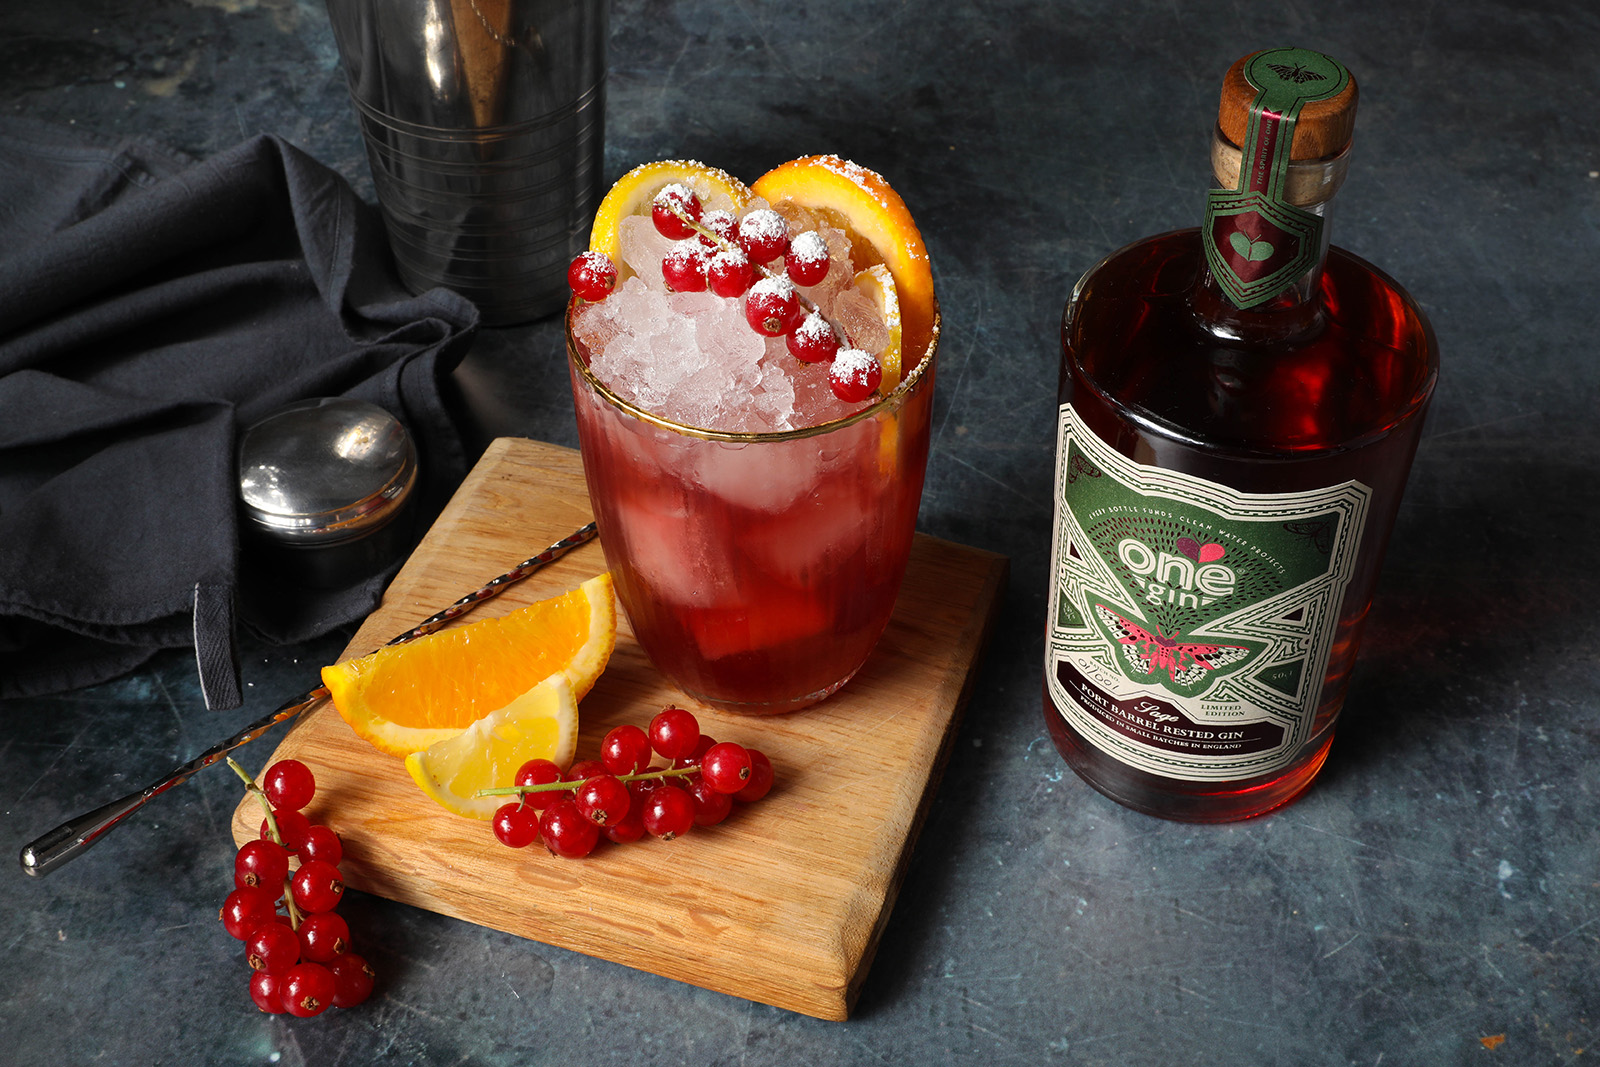 A Port Cobbler Cocktail served with redcurrant and orange segments